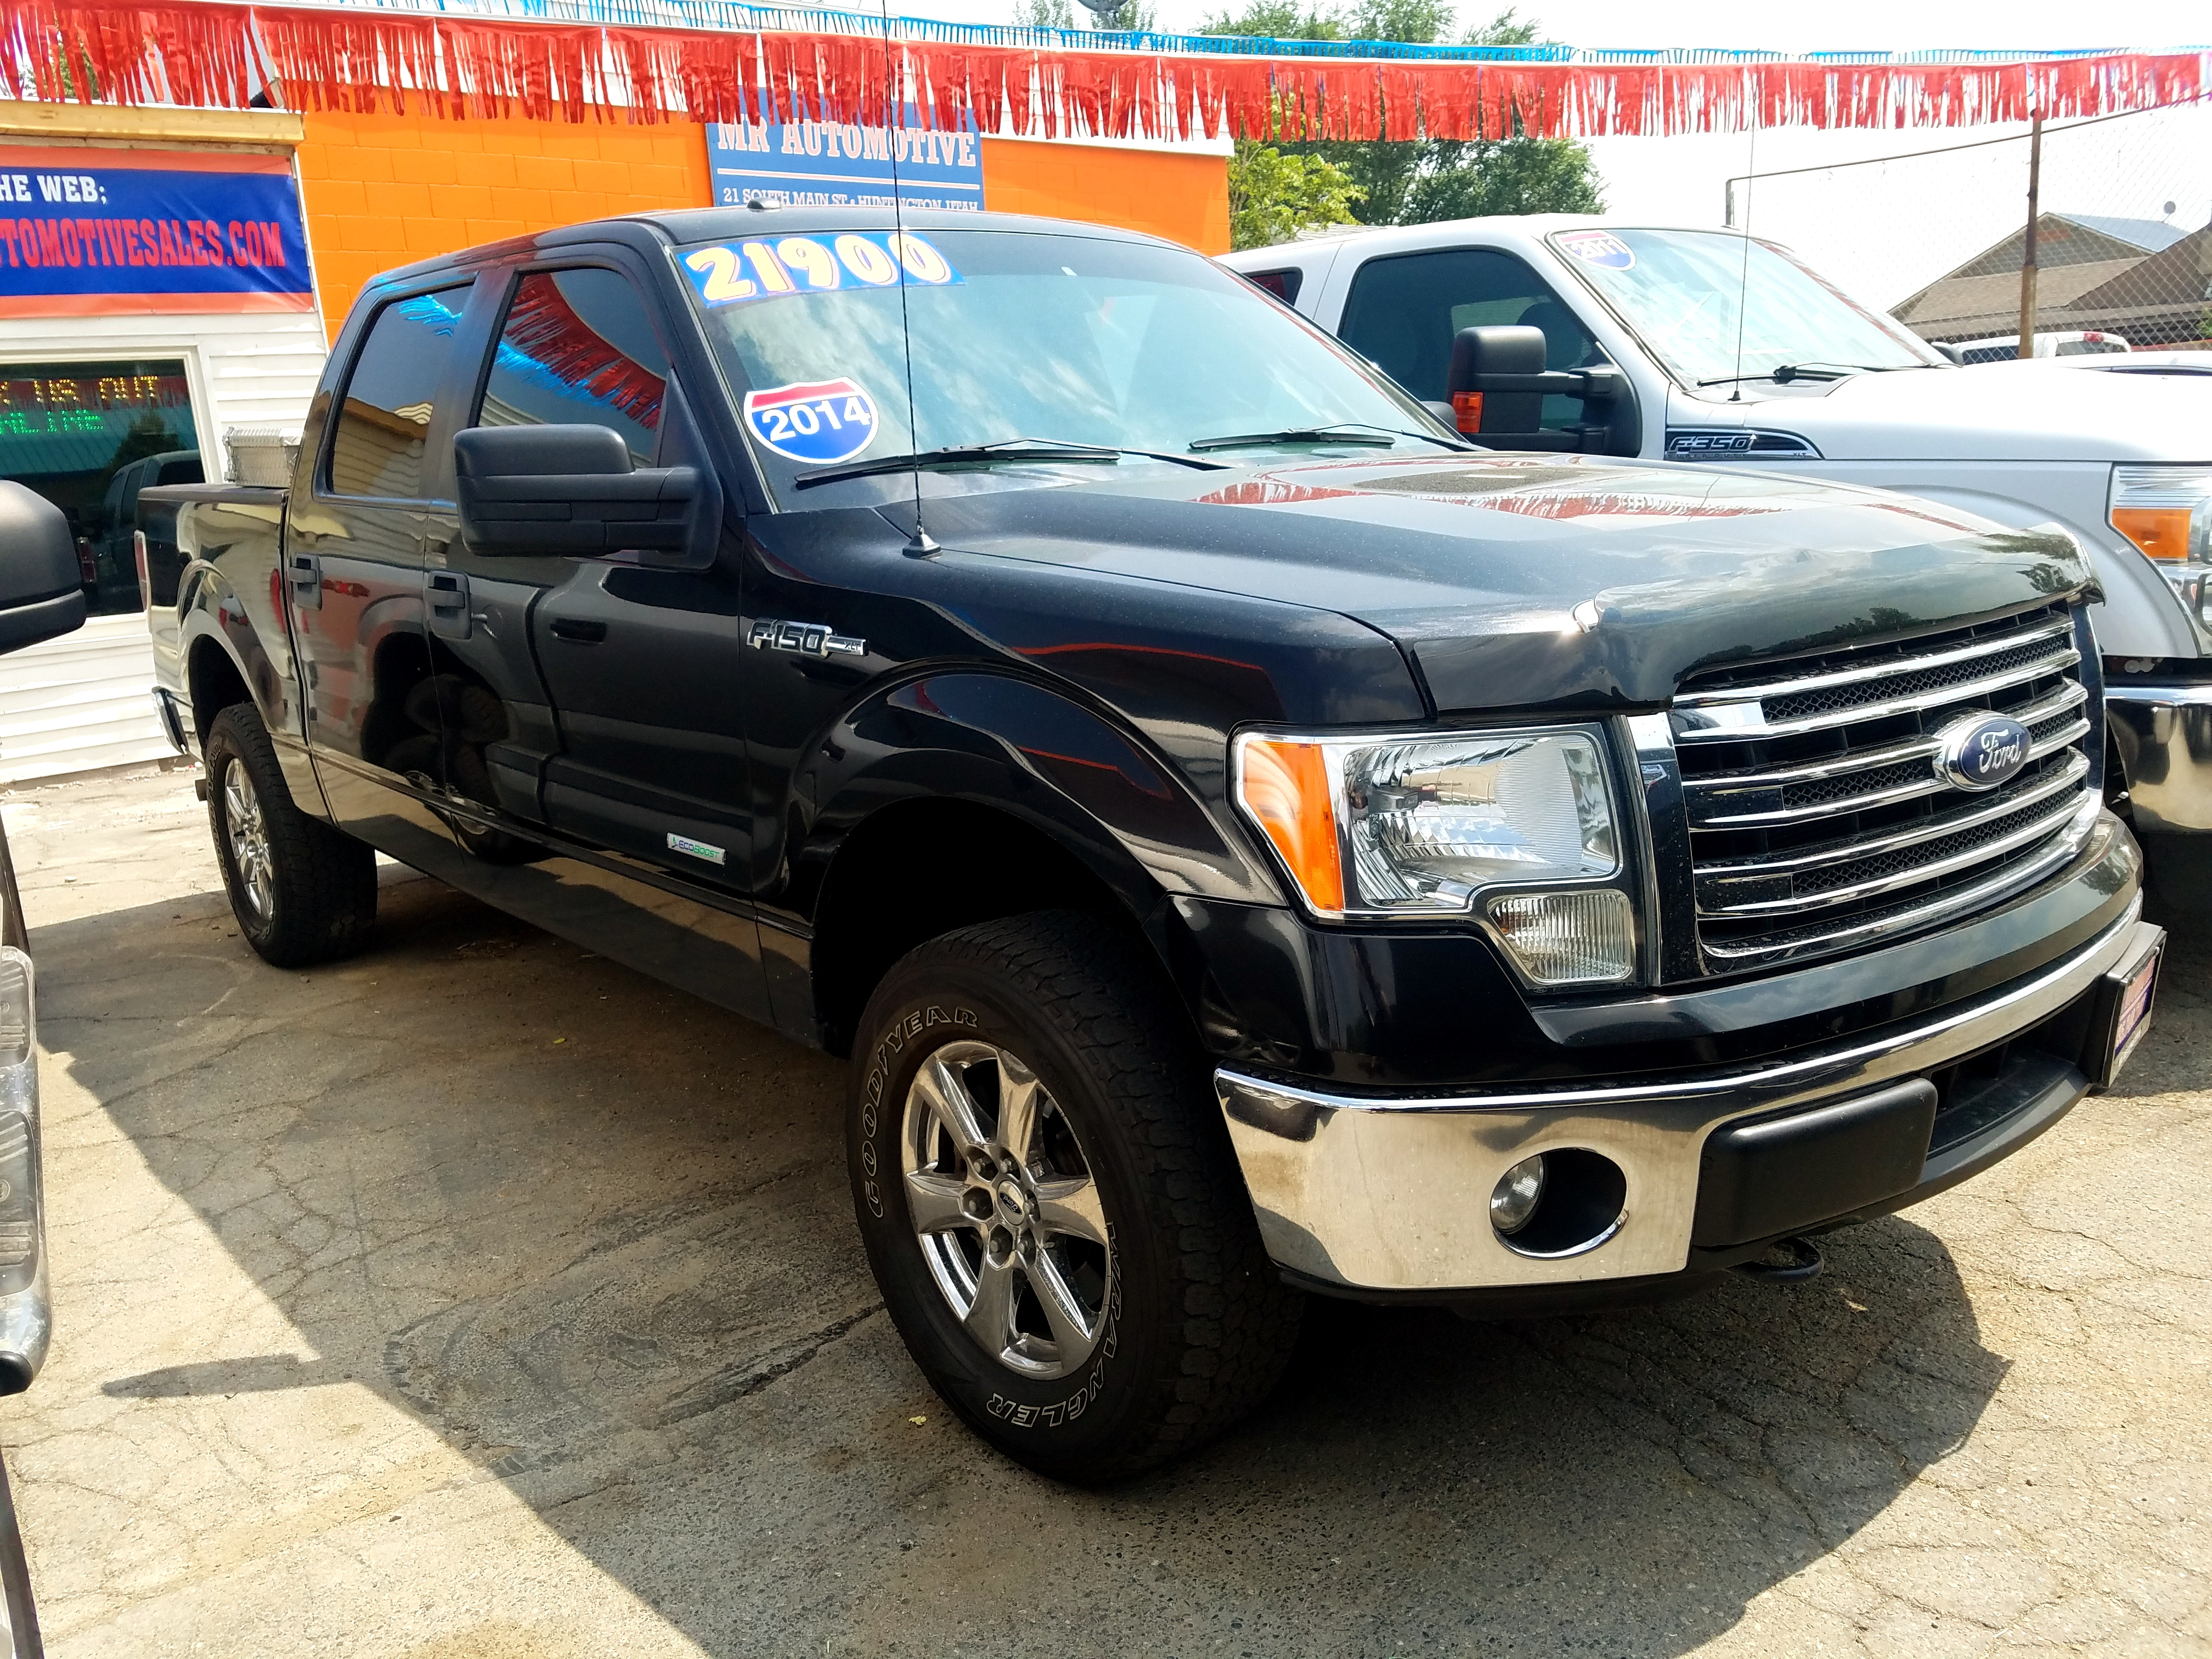 2014 FORD F150 XLT ECO $21,900